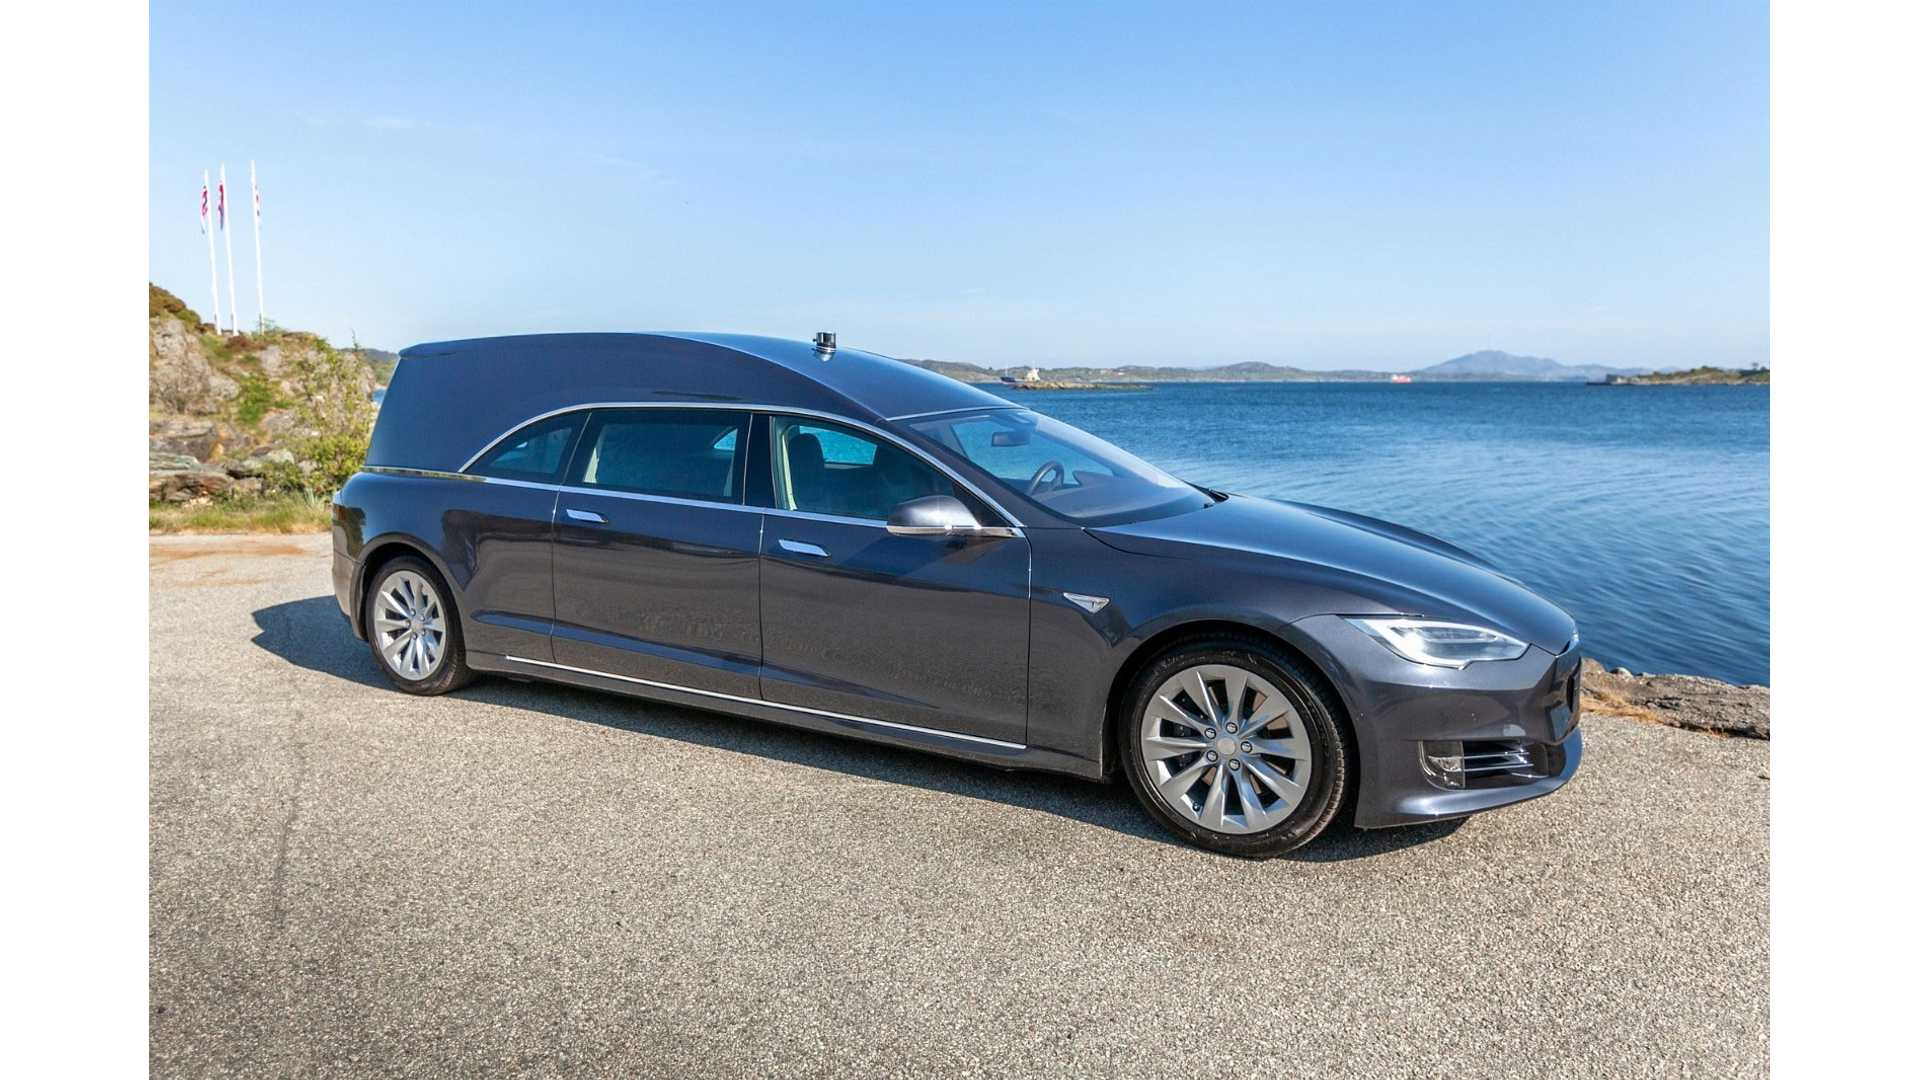 You Can Buy This Tesla Model S Hearse For Almost $250,000